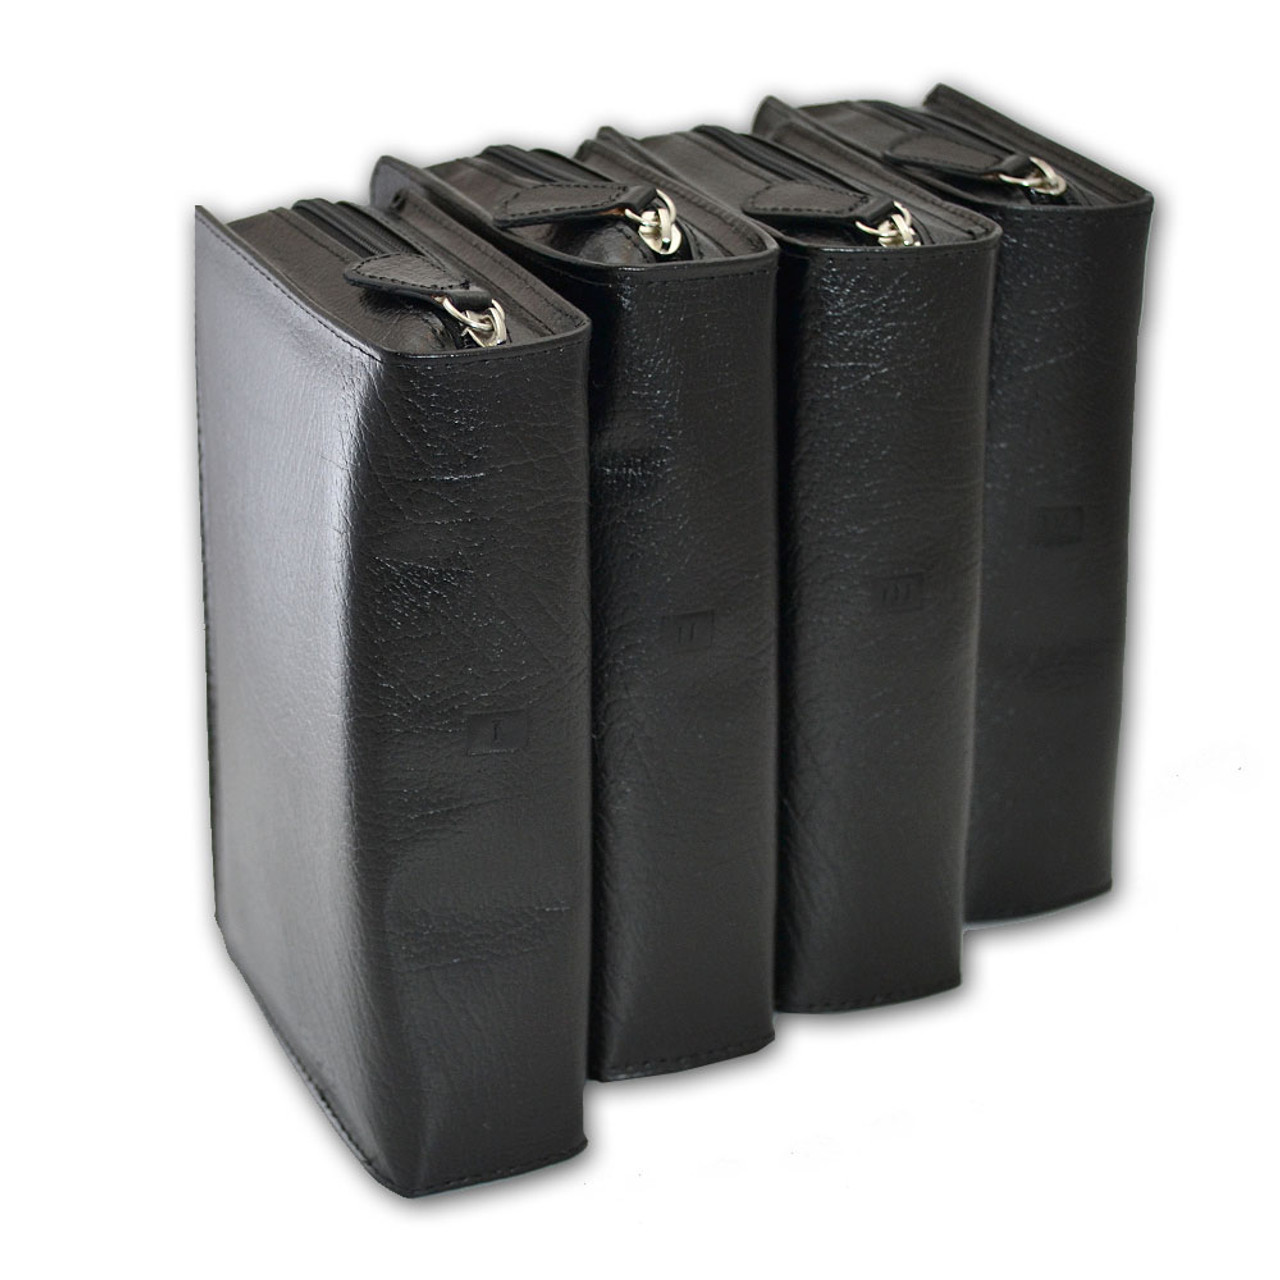 Liturgy of the Hours Cases Black Set of 4